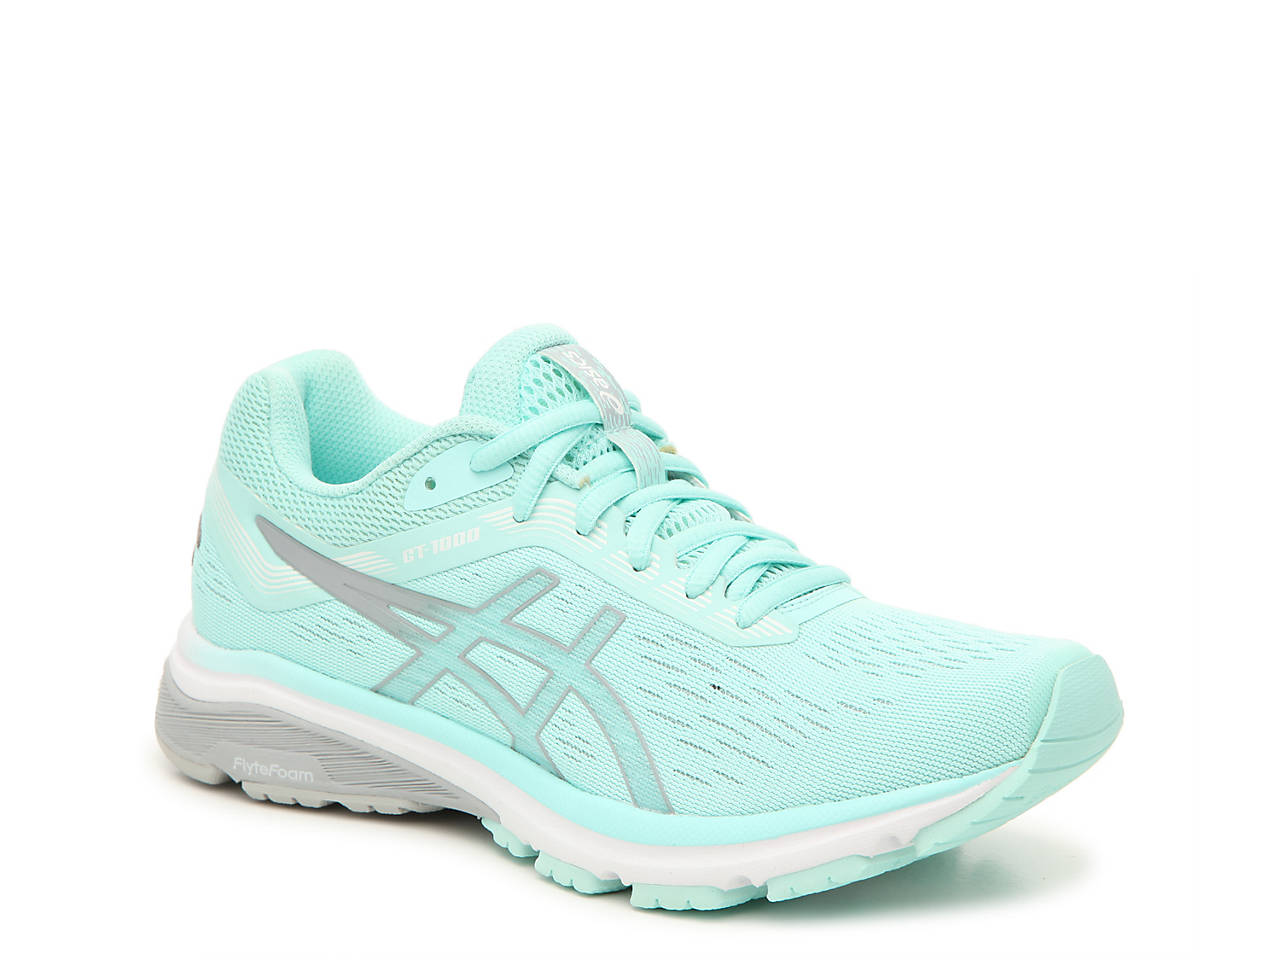 new product 71d08 6f0ca ASICS. GT-1000 7 Running Shoe - Women s